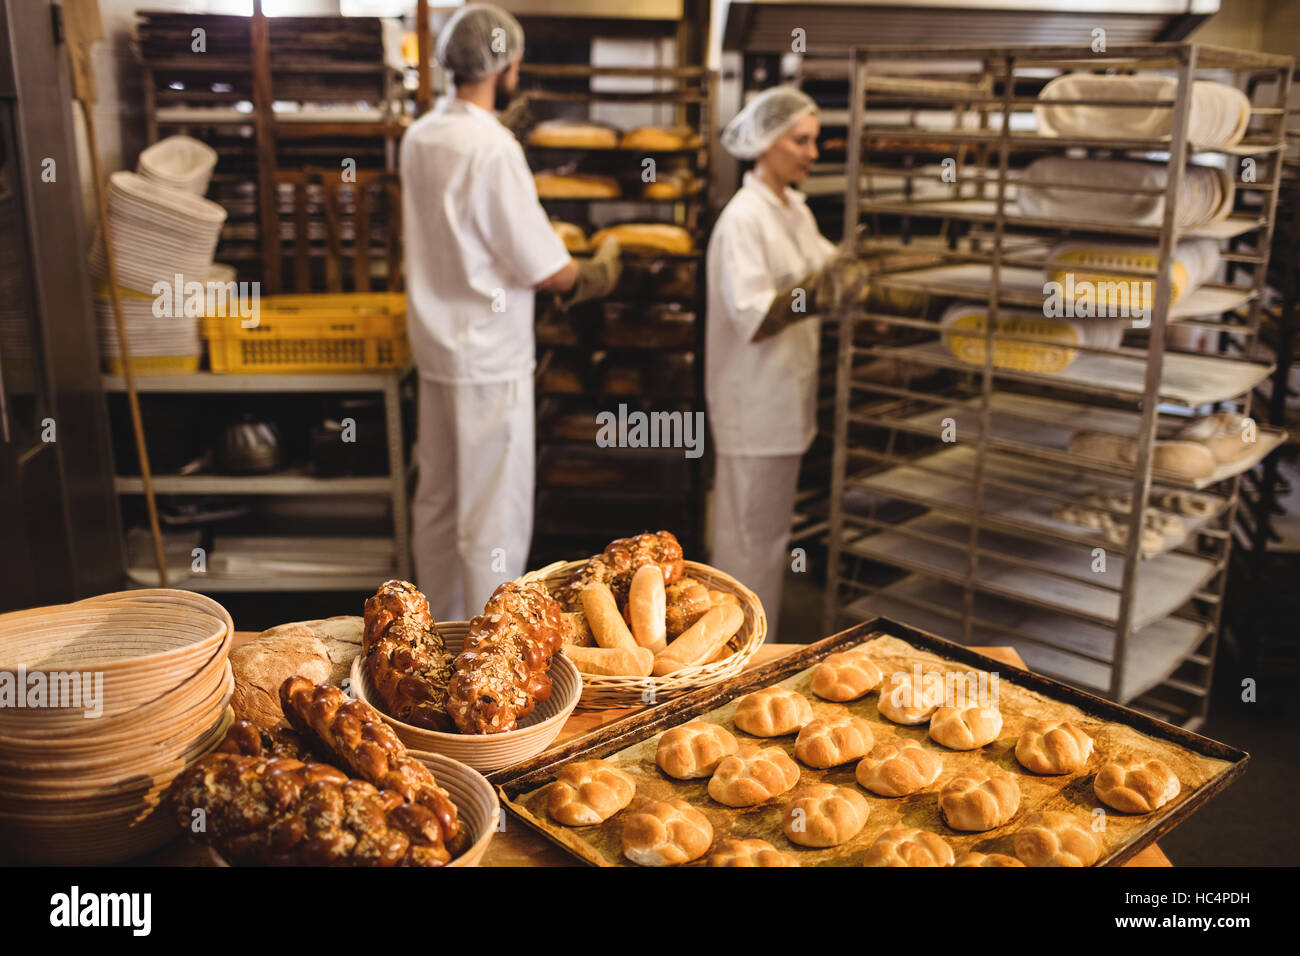 Michetta and sweet food on a table while male and female baker working in background - Stock Image